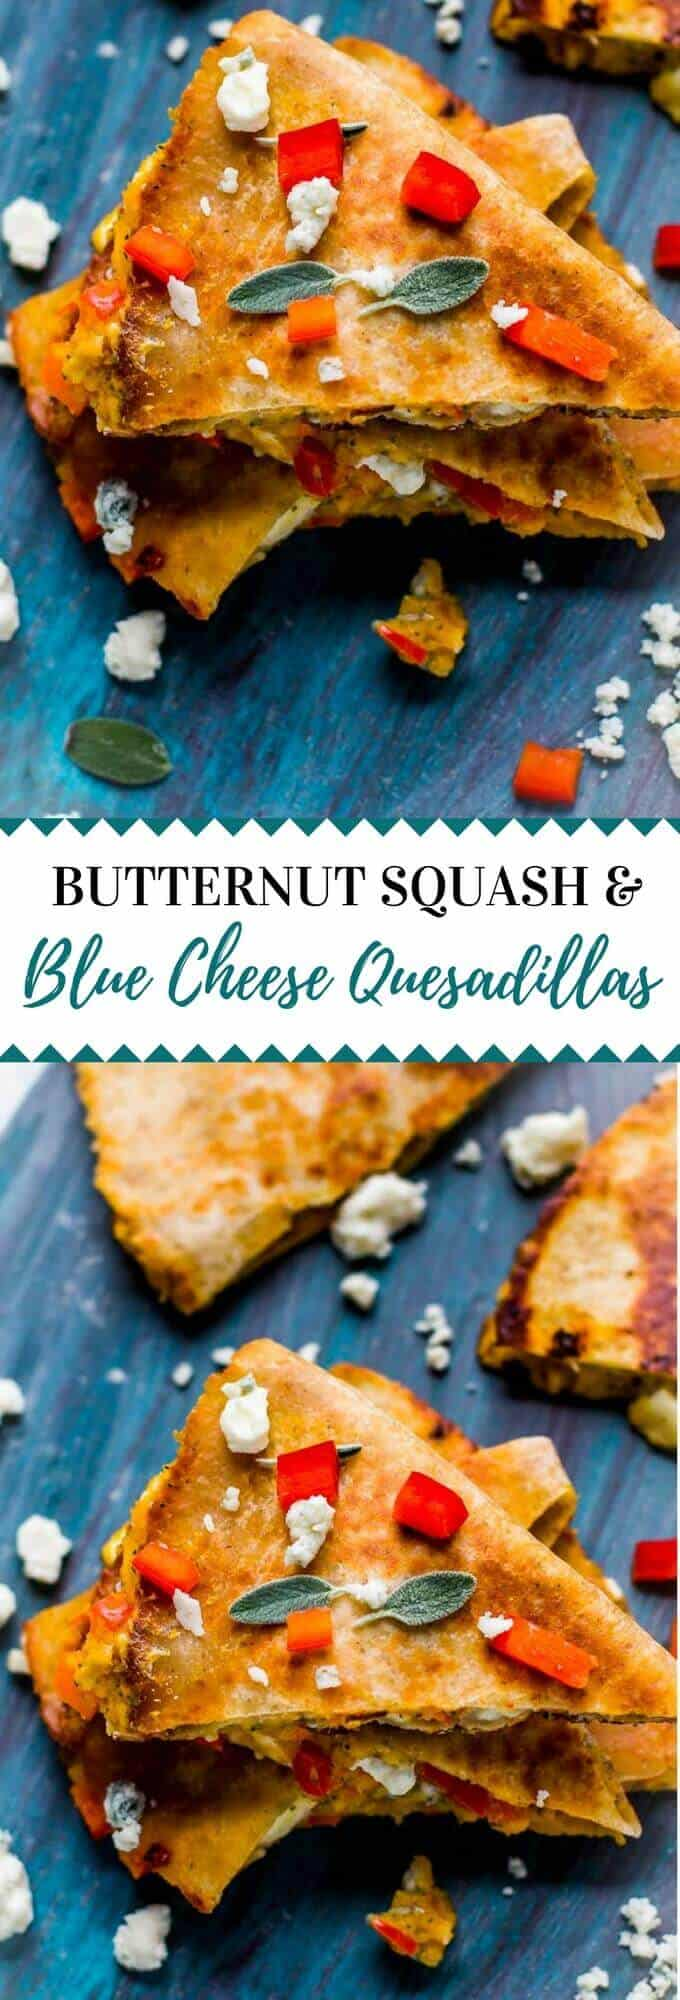 TheseButternut Squash Blue Cheese Quesadillas are the perfect blend of easy and comfort food. Perfect for when you need a healthy meal that soothes your soul. #vegetarian #glutenfree